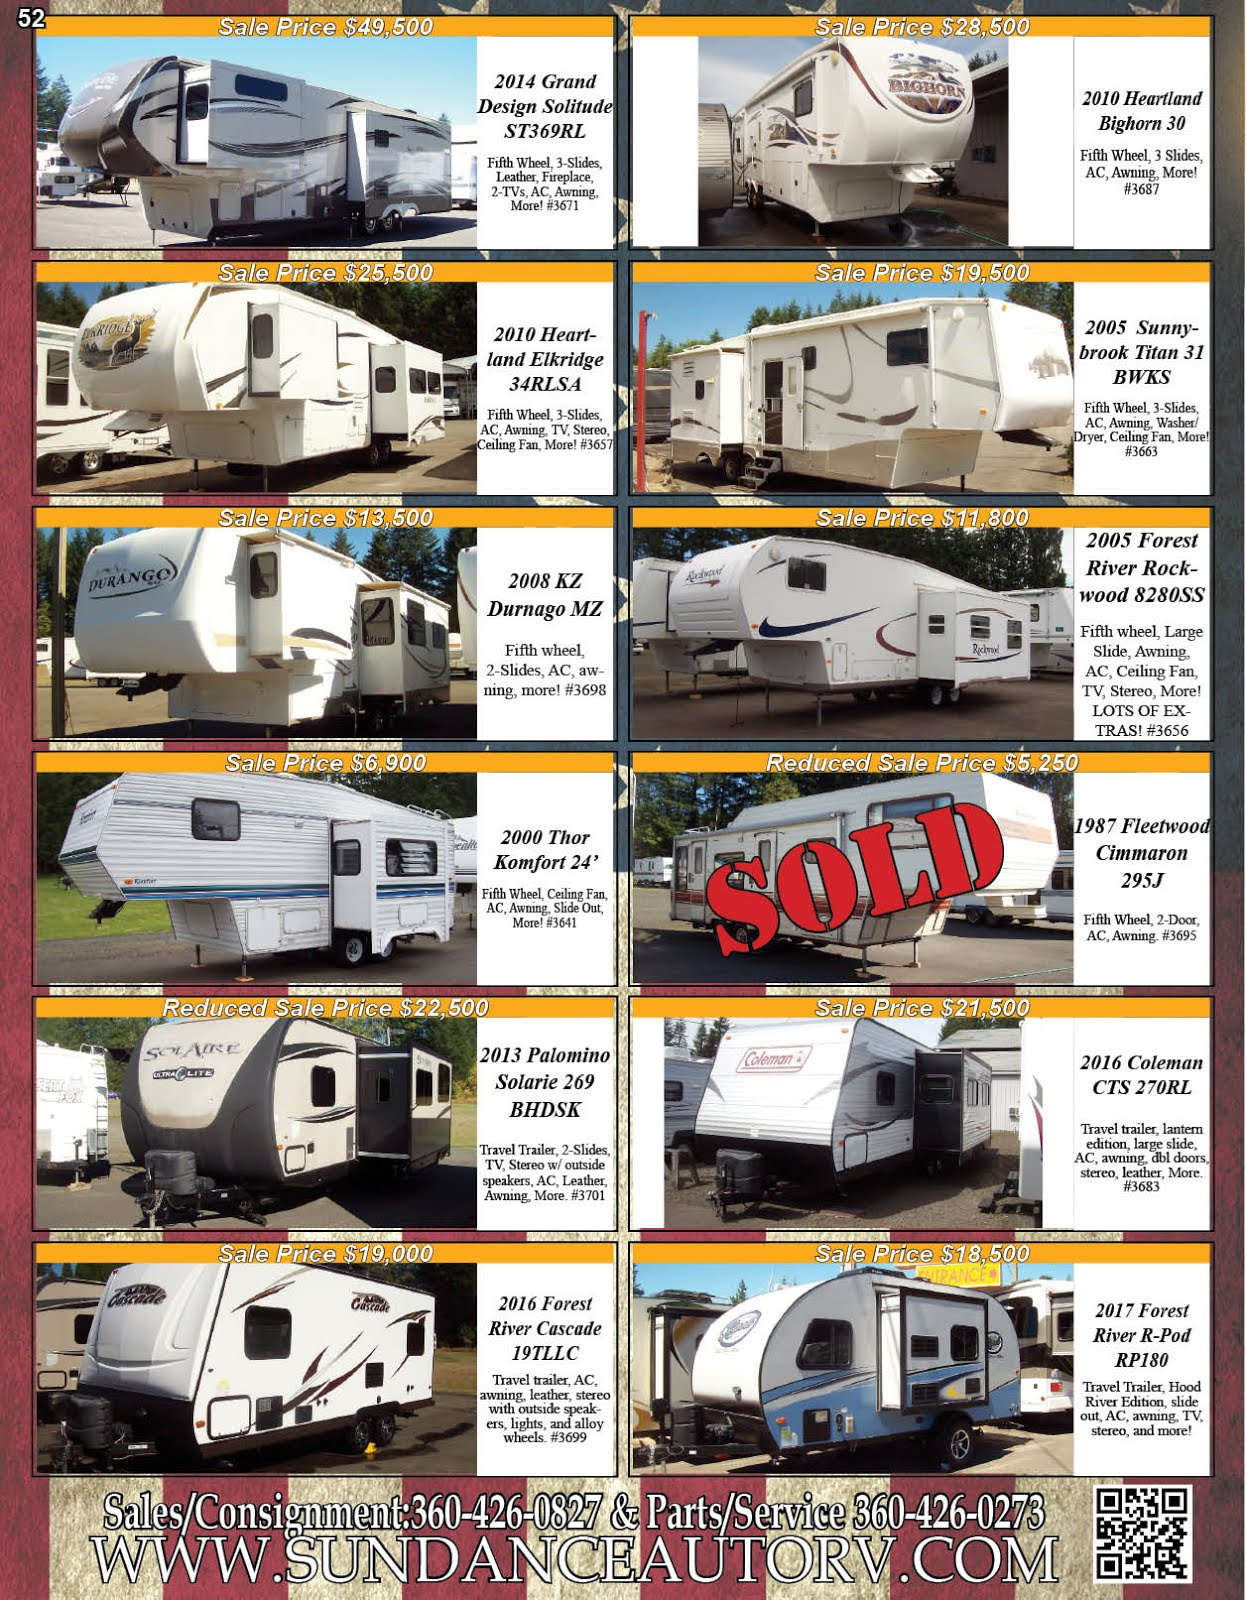 Sundance Auto & RV Center Sales Service Parts & Consignments